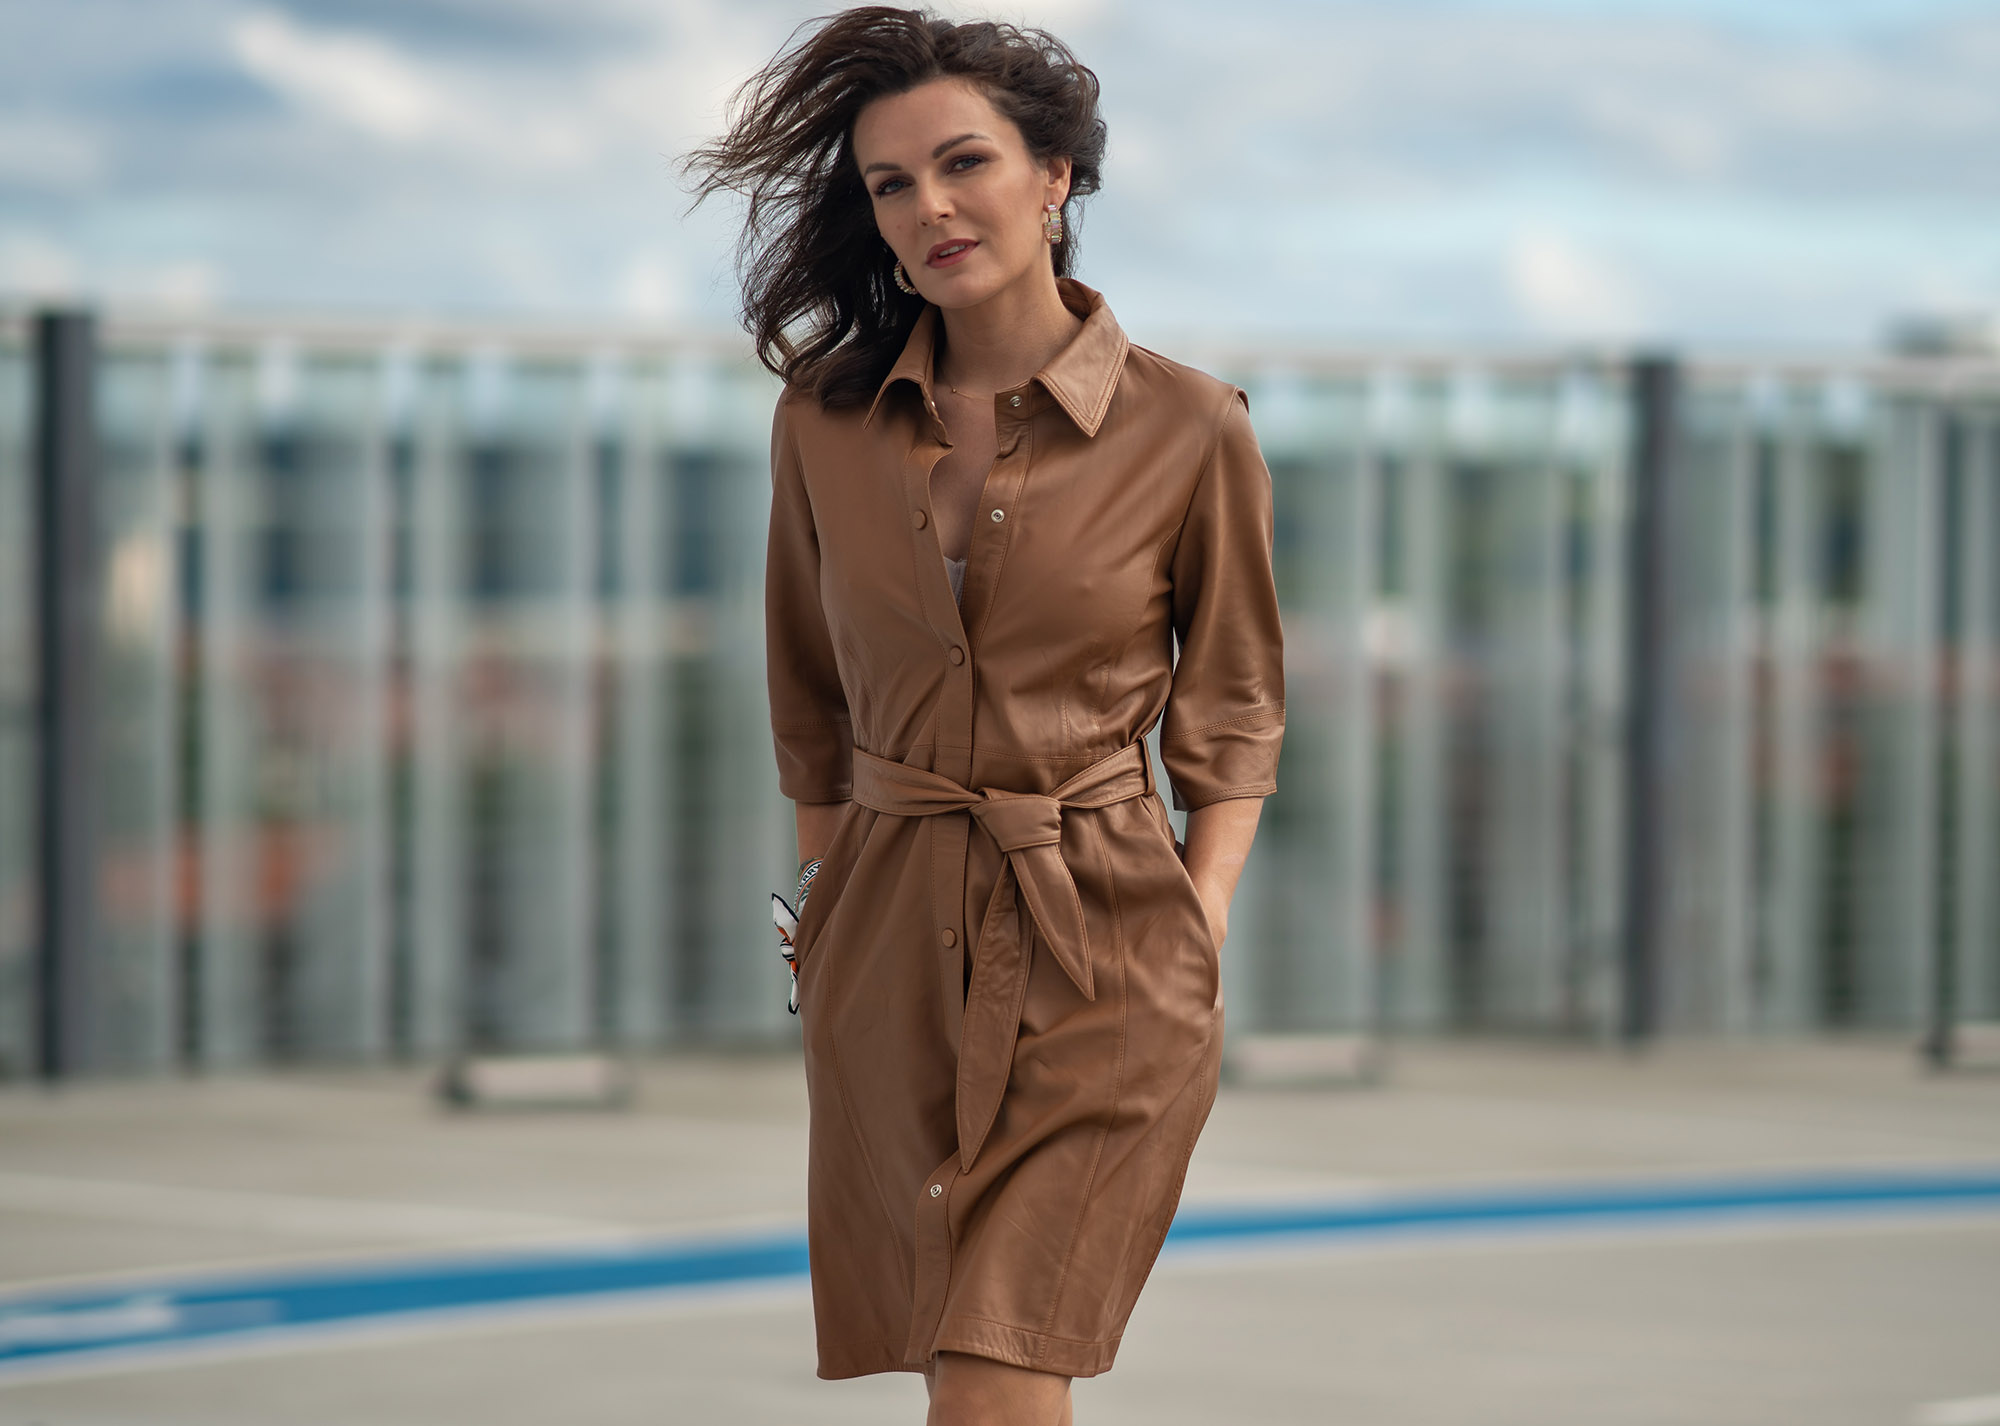 woman in brown leather dress